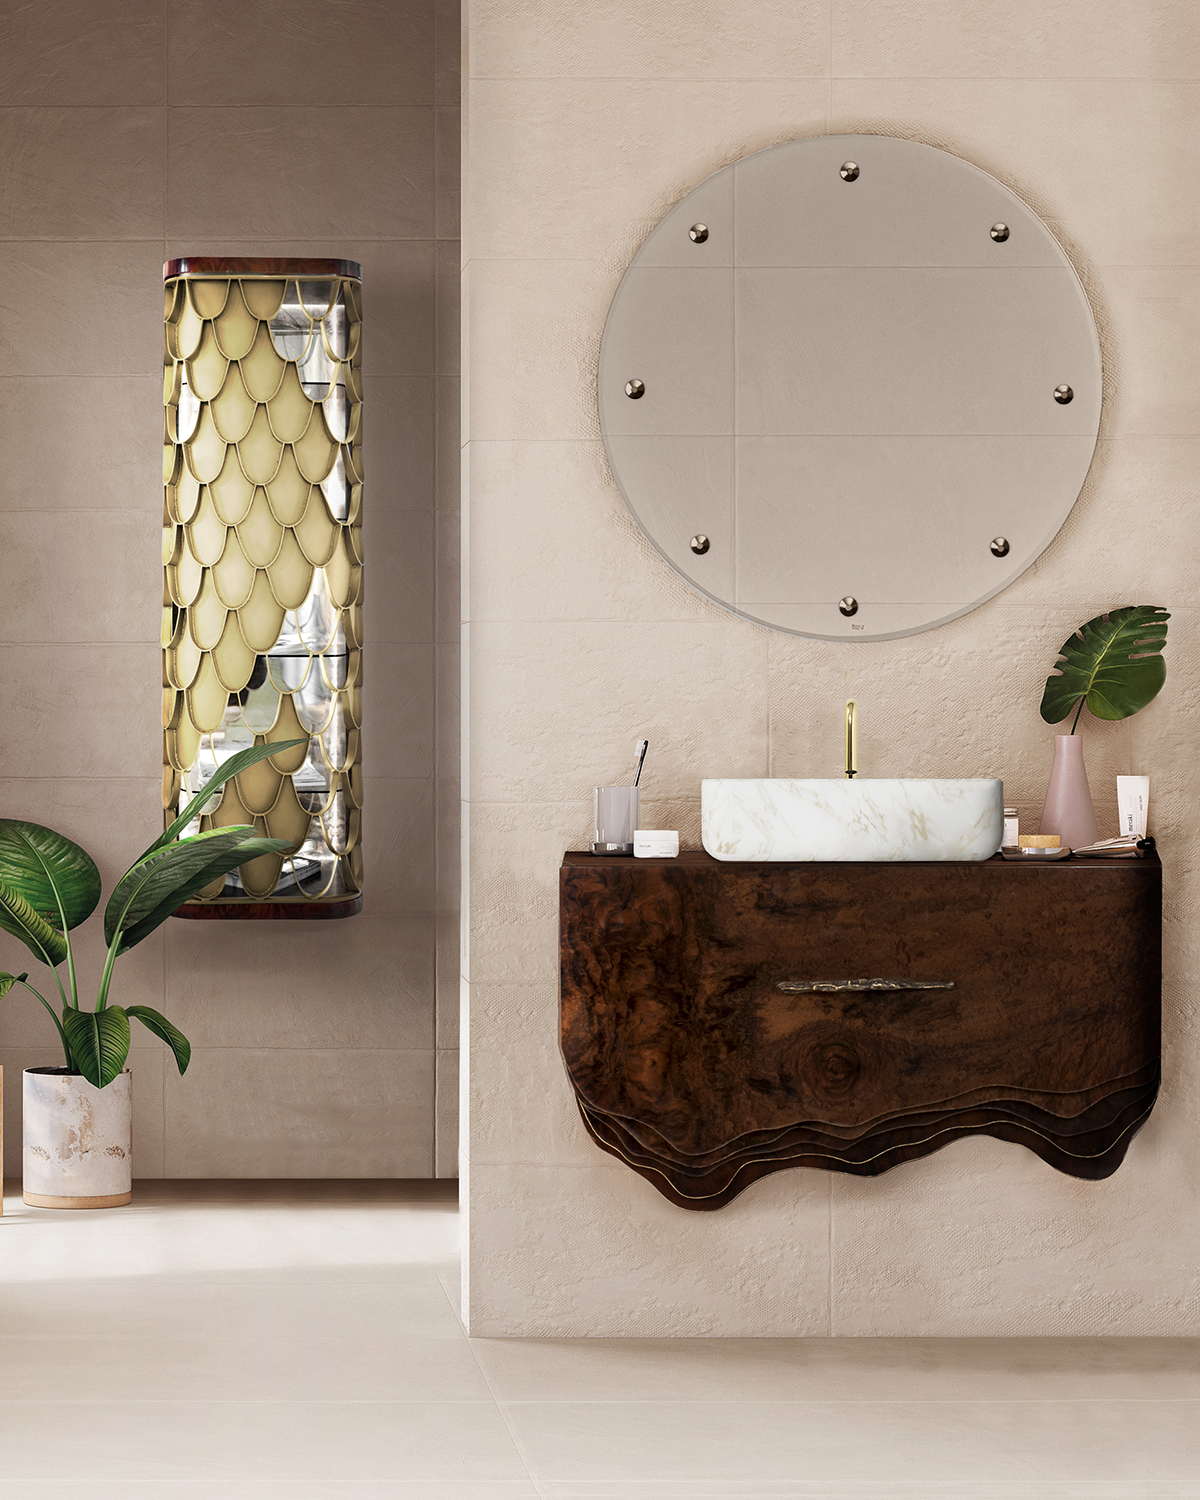 Bathrooms With Wooden Details, maison valentina, wood, bathrooms, design bathrooms with wooden details Bathrooms With Wooden Details : 3 Innovative Beautiful Ideas Bathroom with Wood Accents 4